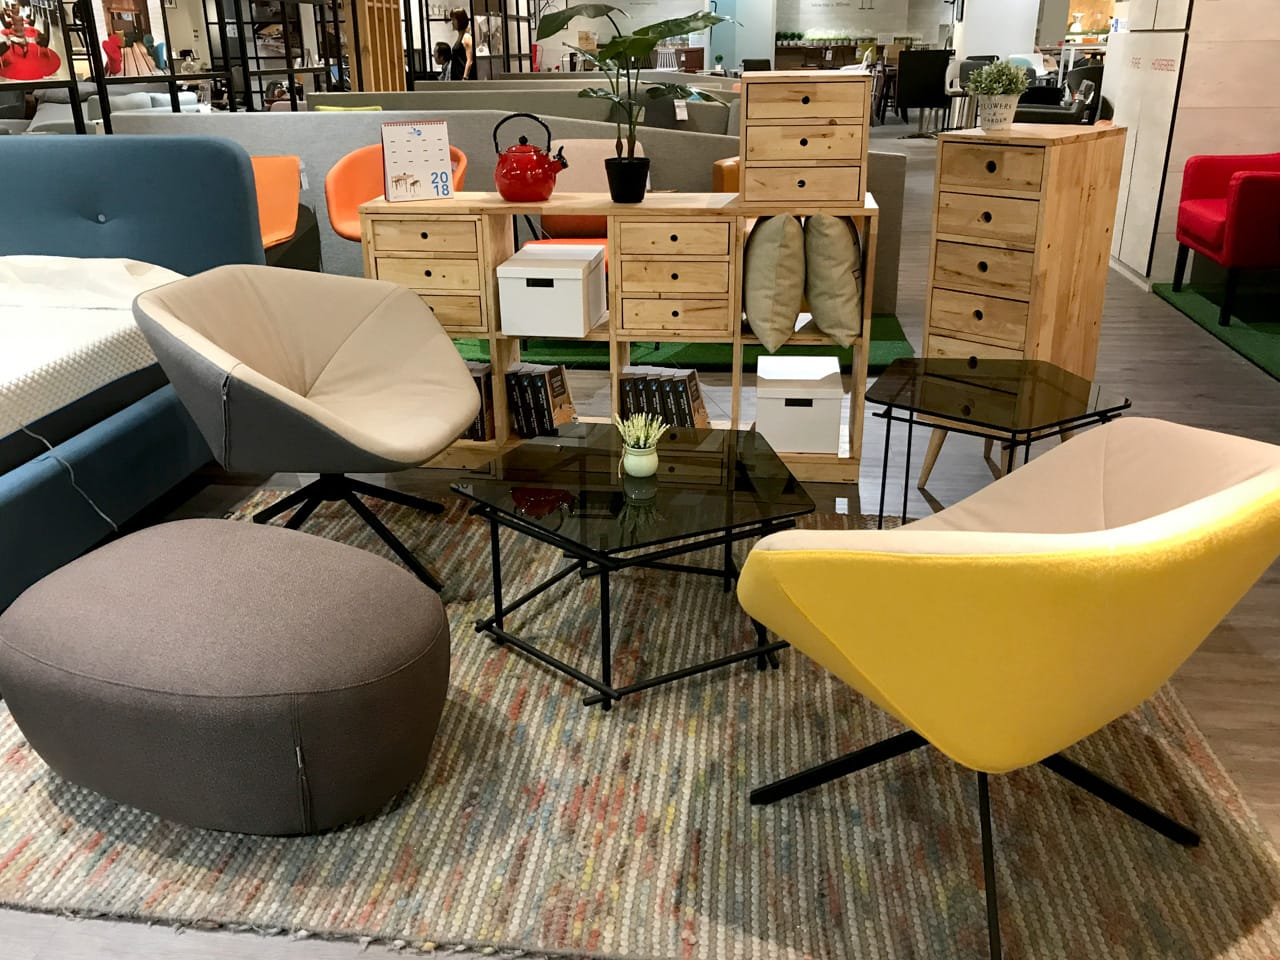 Comfort Design - The Chair & Table